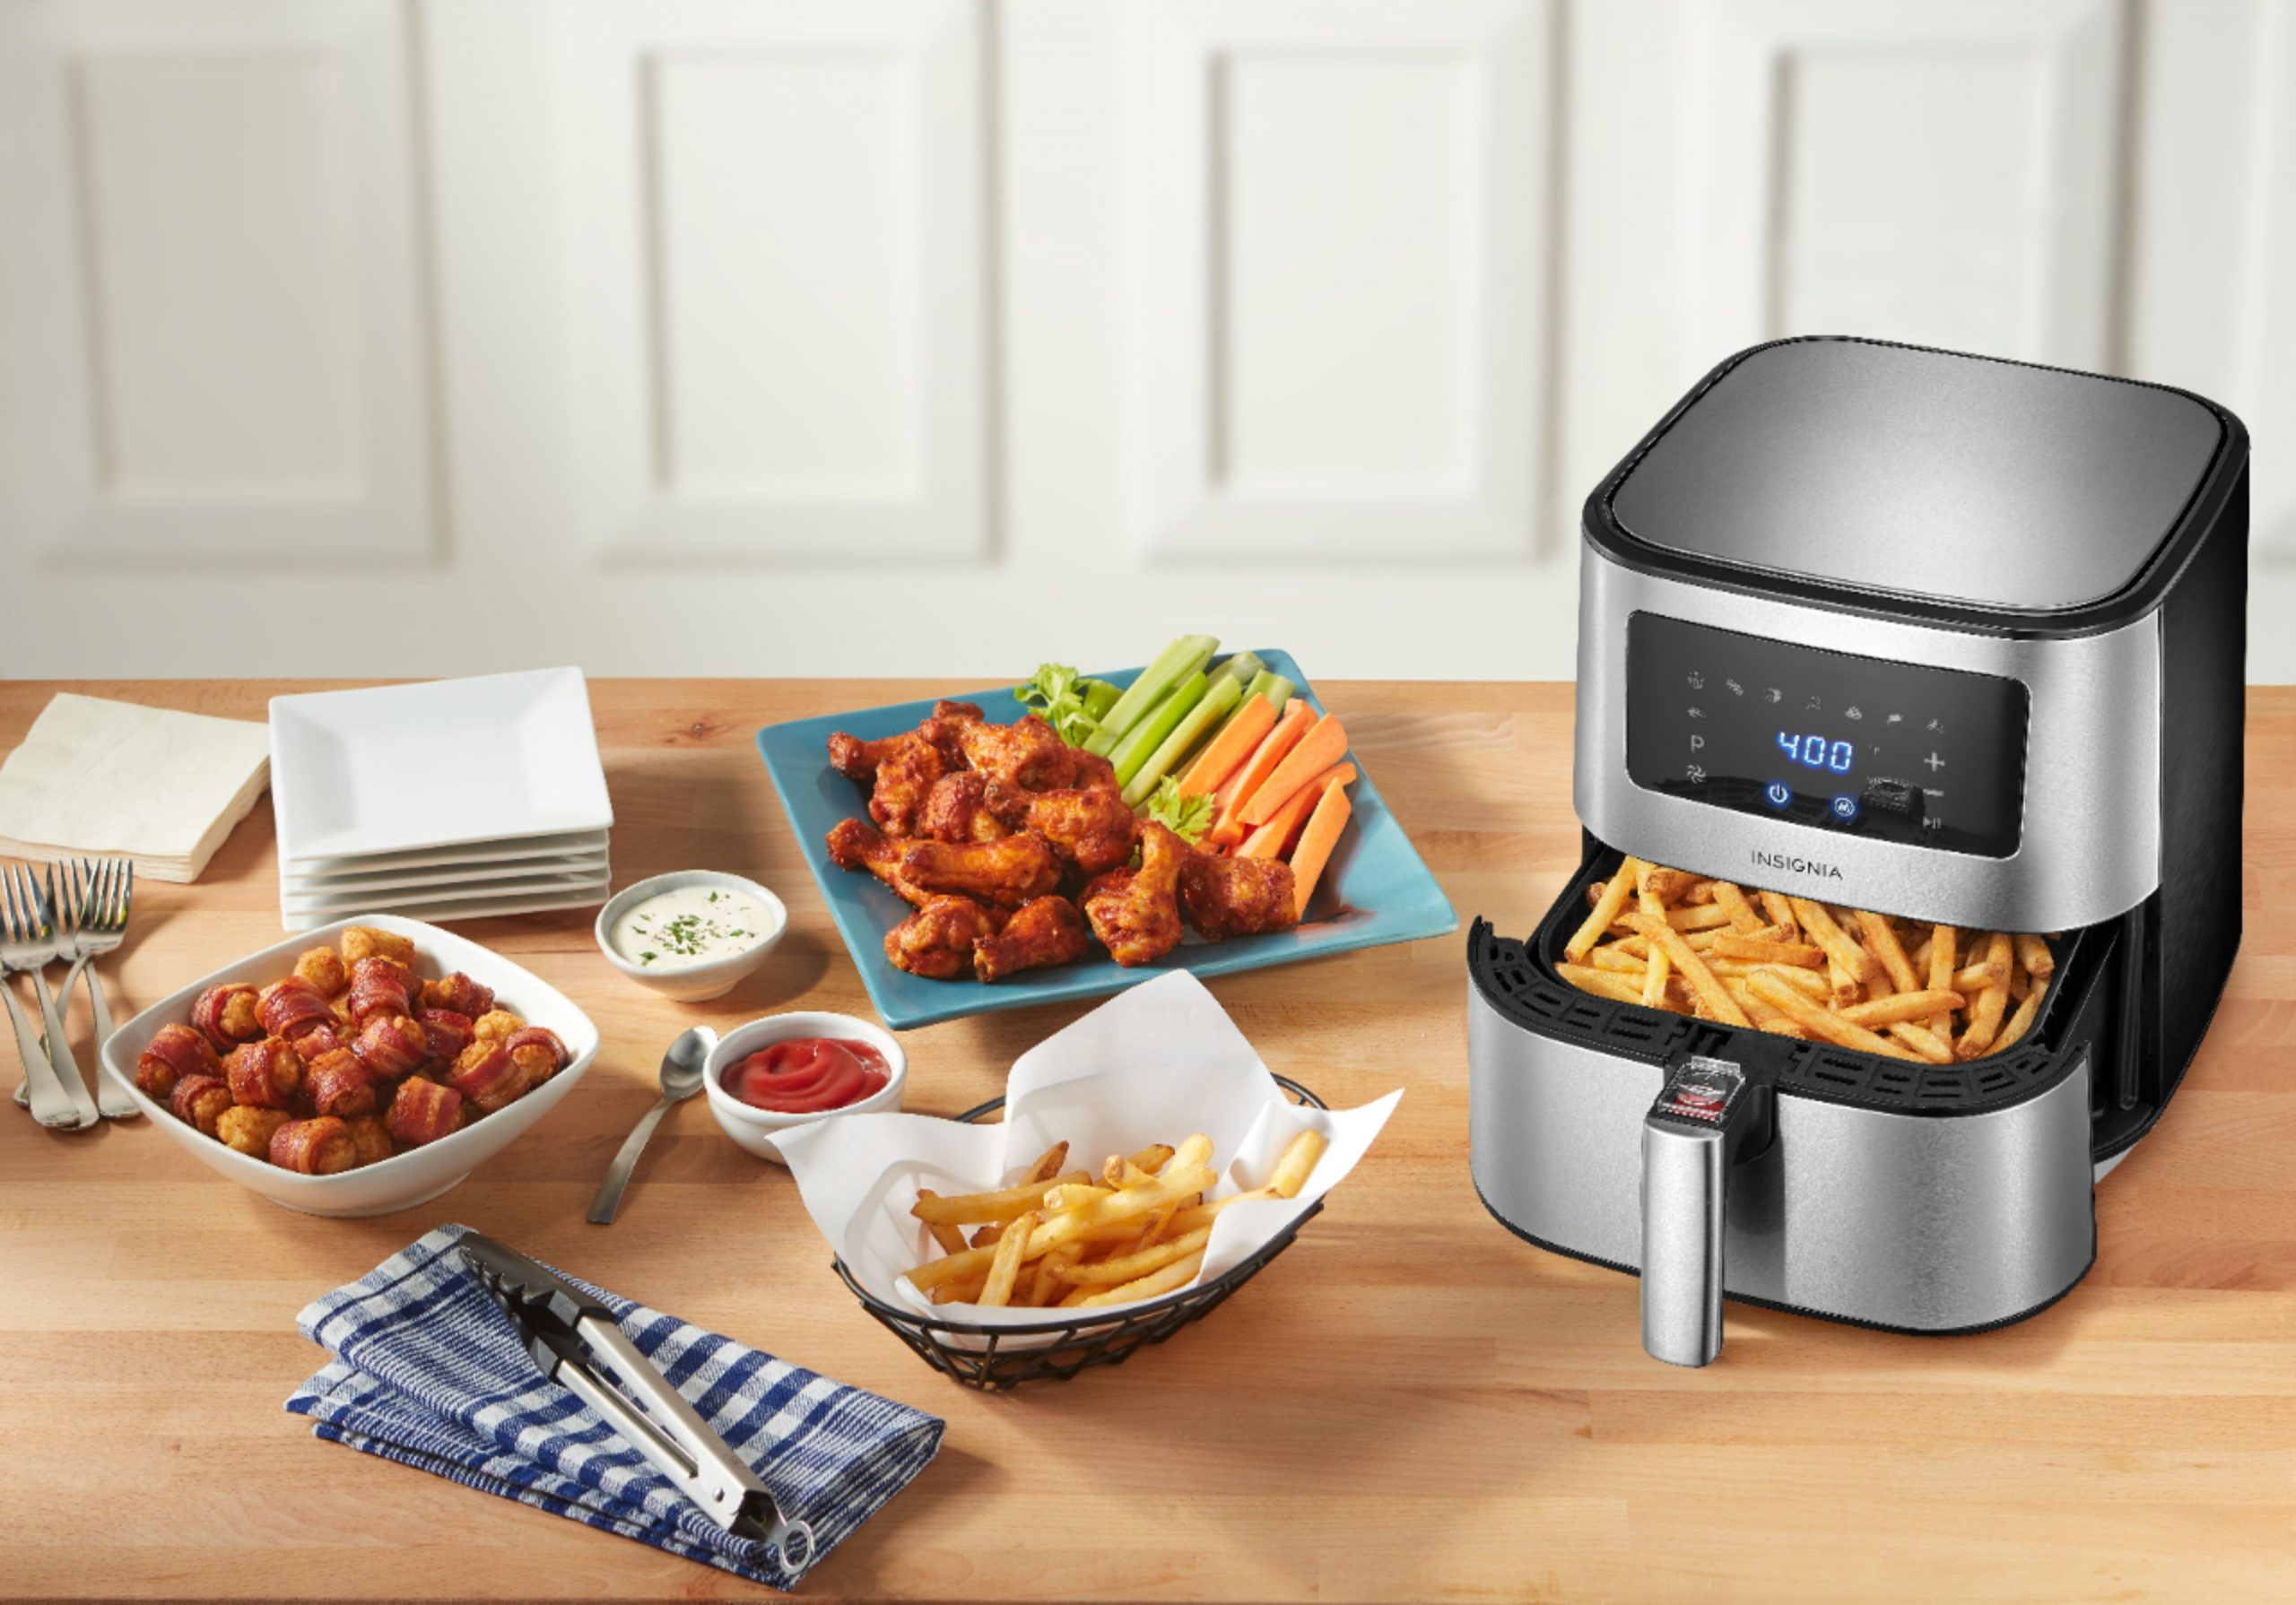 Air Fryer Deals! Insignia 5 Qt. Digital Air Fryer Only $39.99 (Reg. $120)!